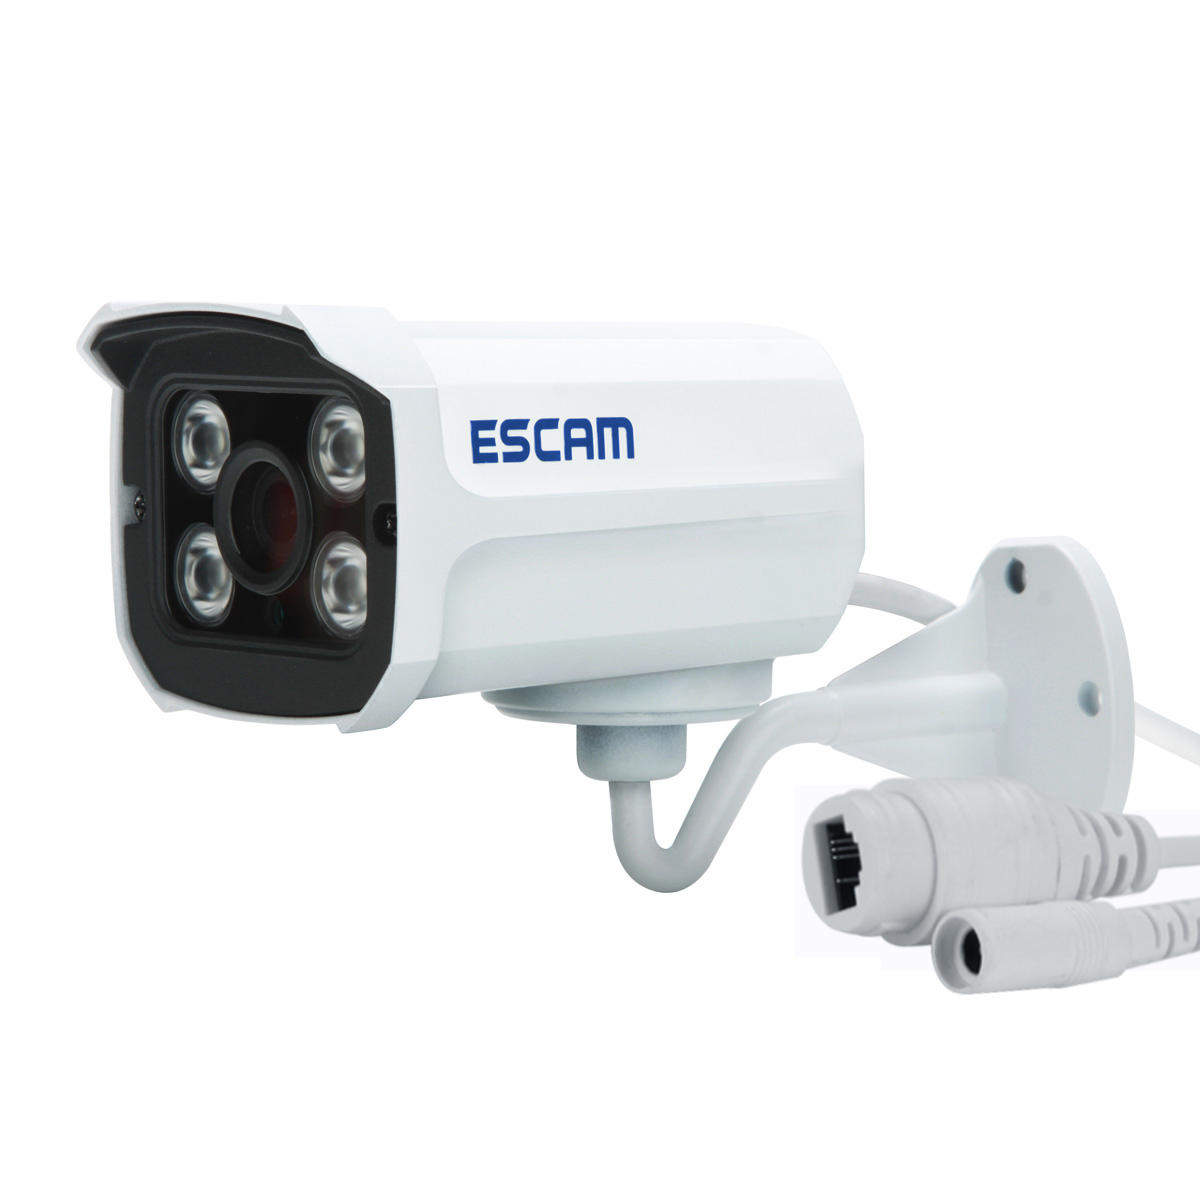 Escam Brick QD300 ONVIF HD 1080P P2P Cloud IR Security IP Camera POE IP66 Waterproof Upgraded Version